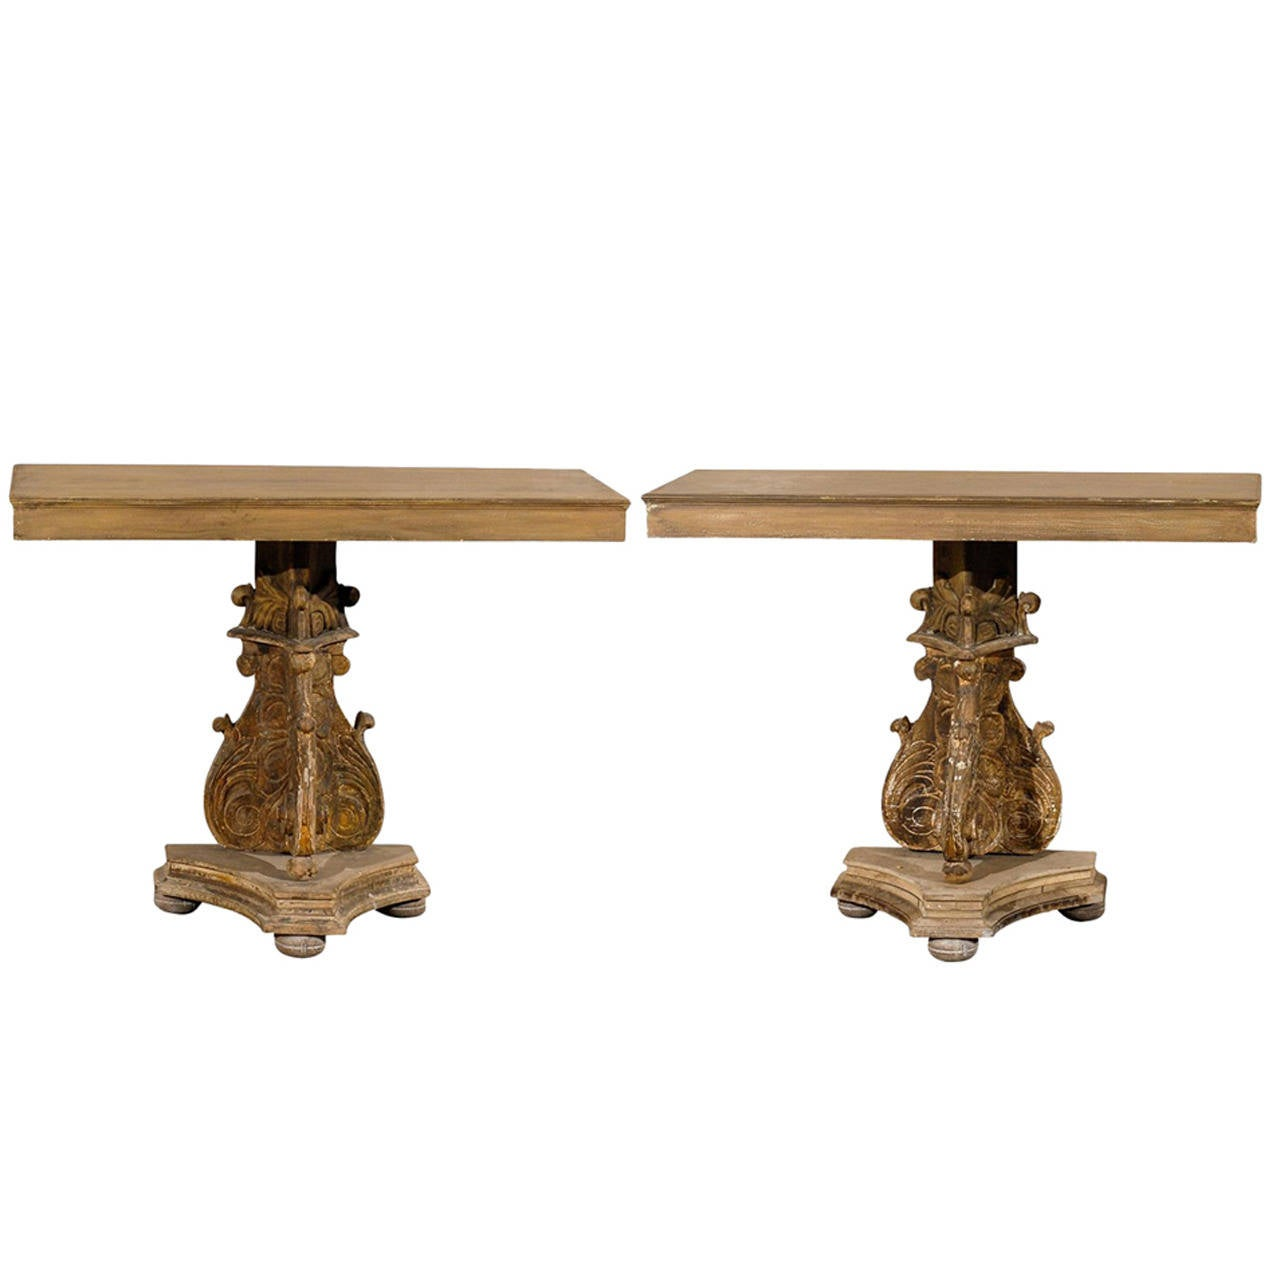 19th Century Italian Richly Carved Wood Console Table